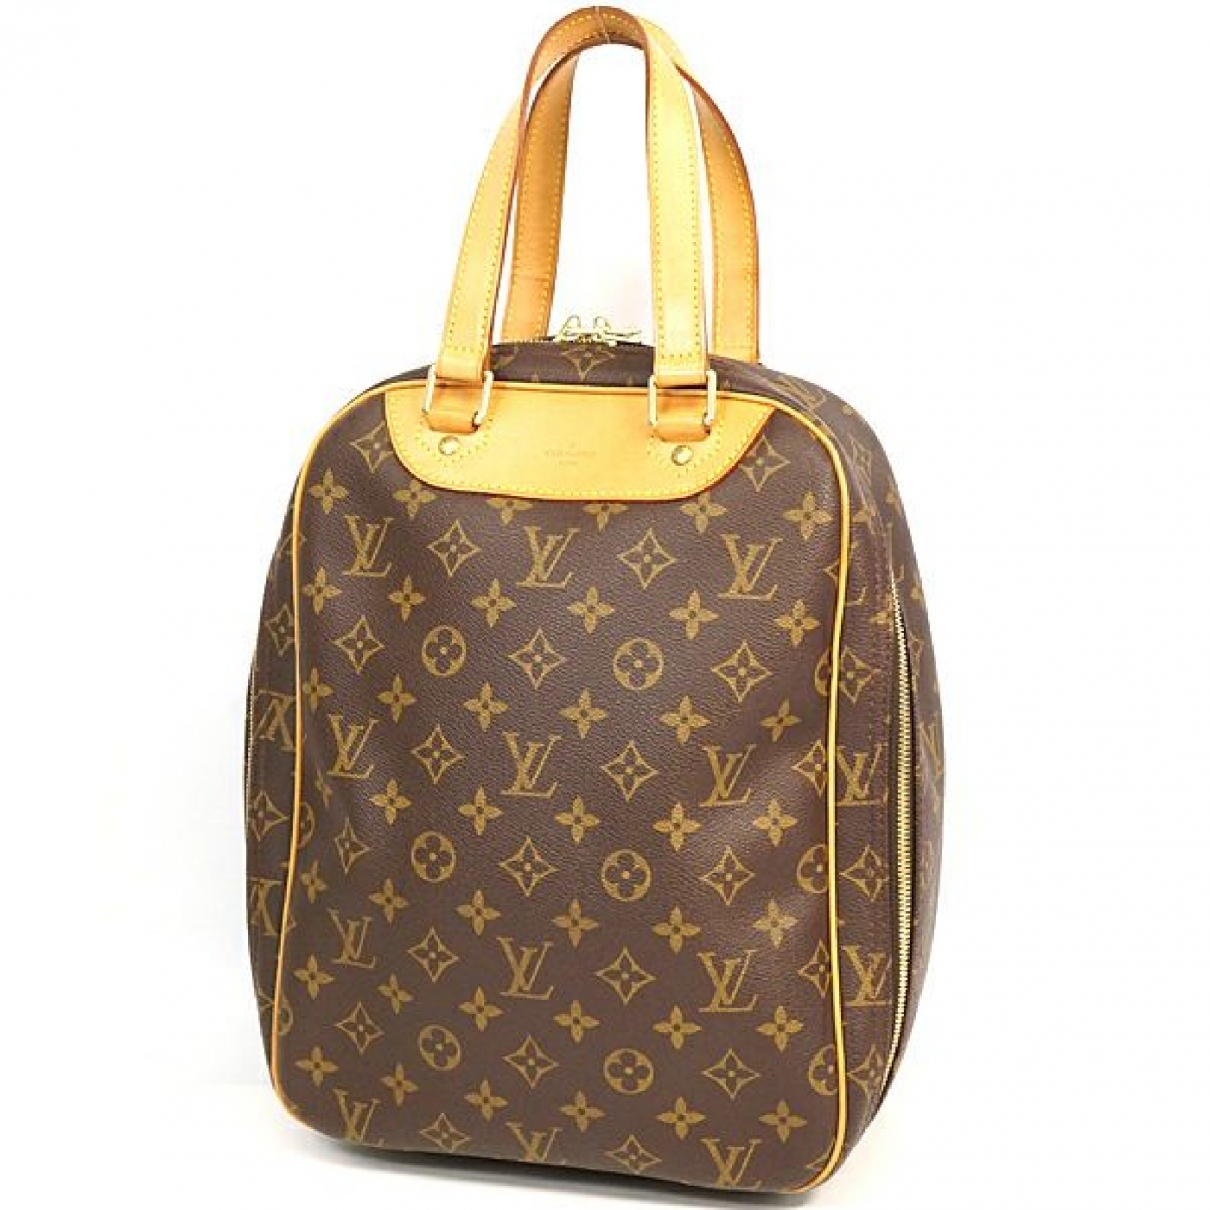 Louis Vuitton \N Cloth handbag for Women \N